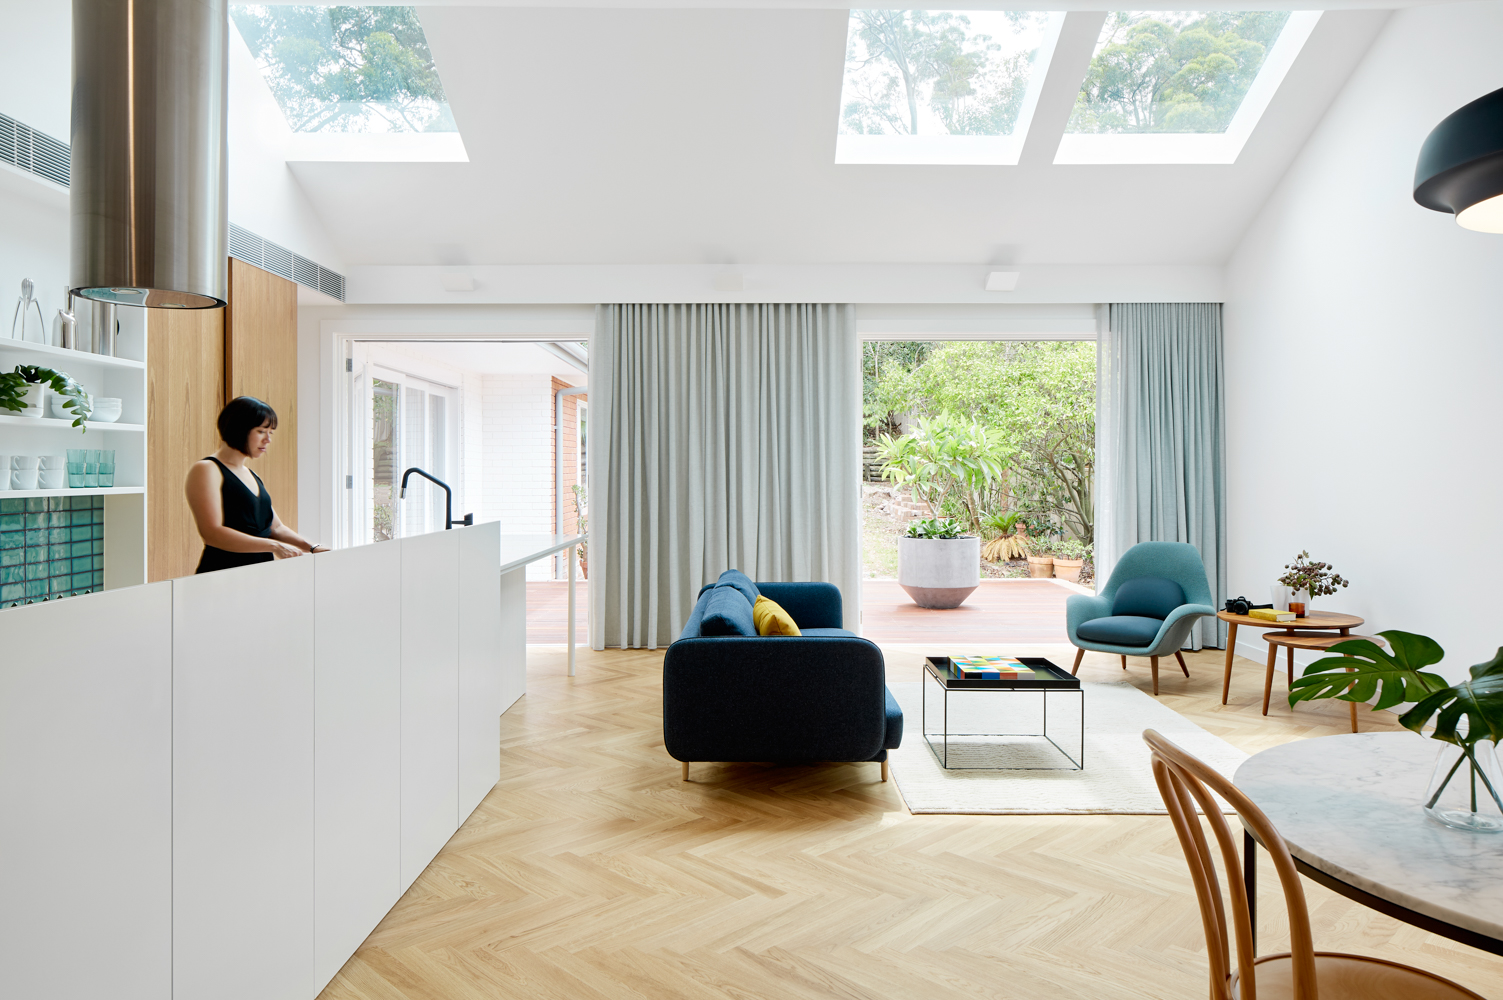 Looking at kitchen to outside with skylights above